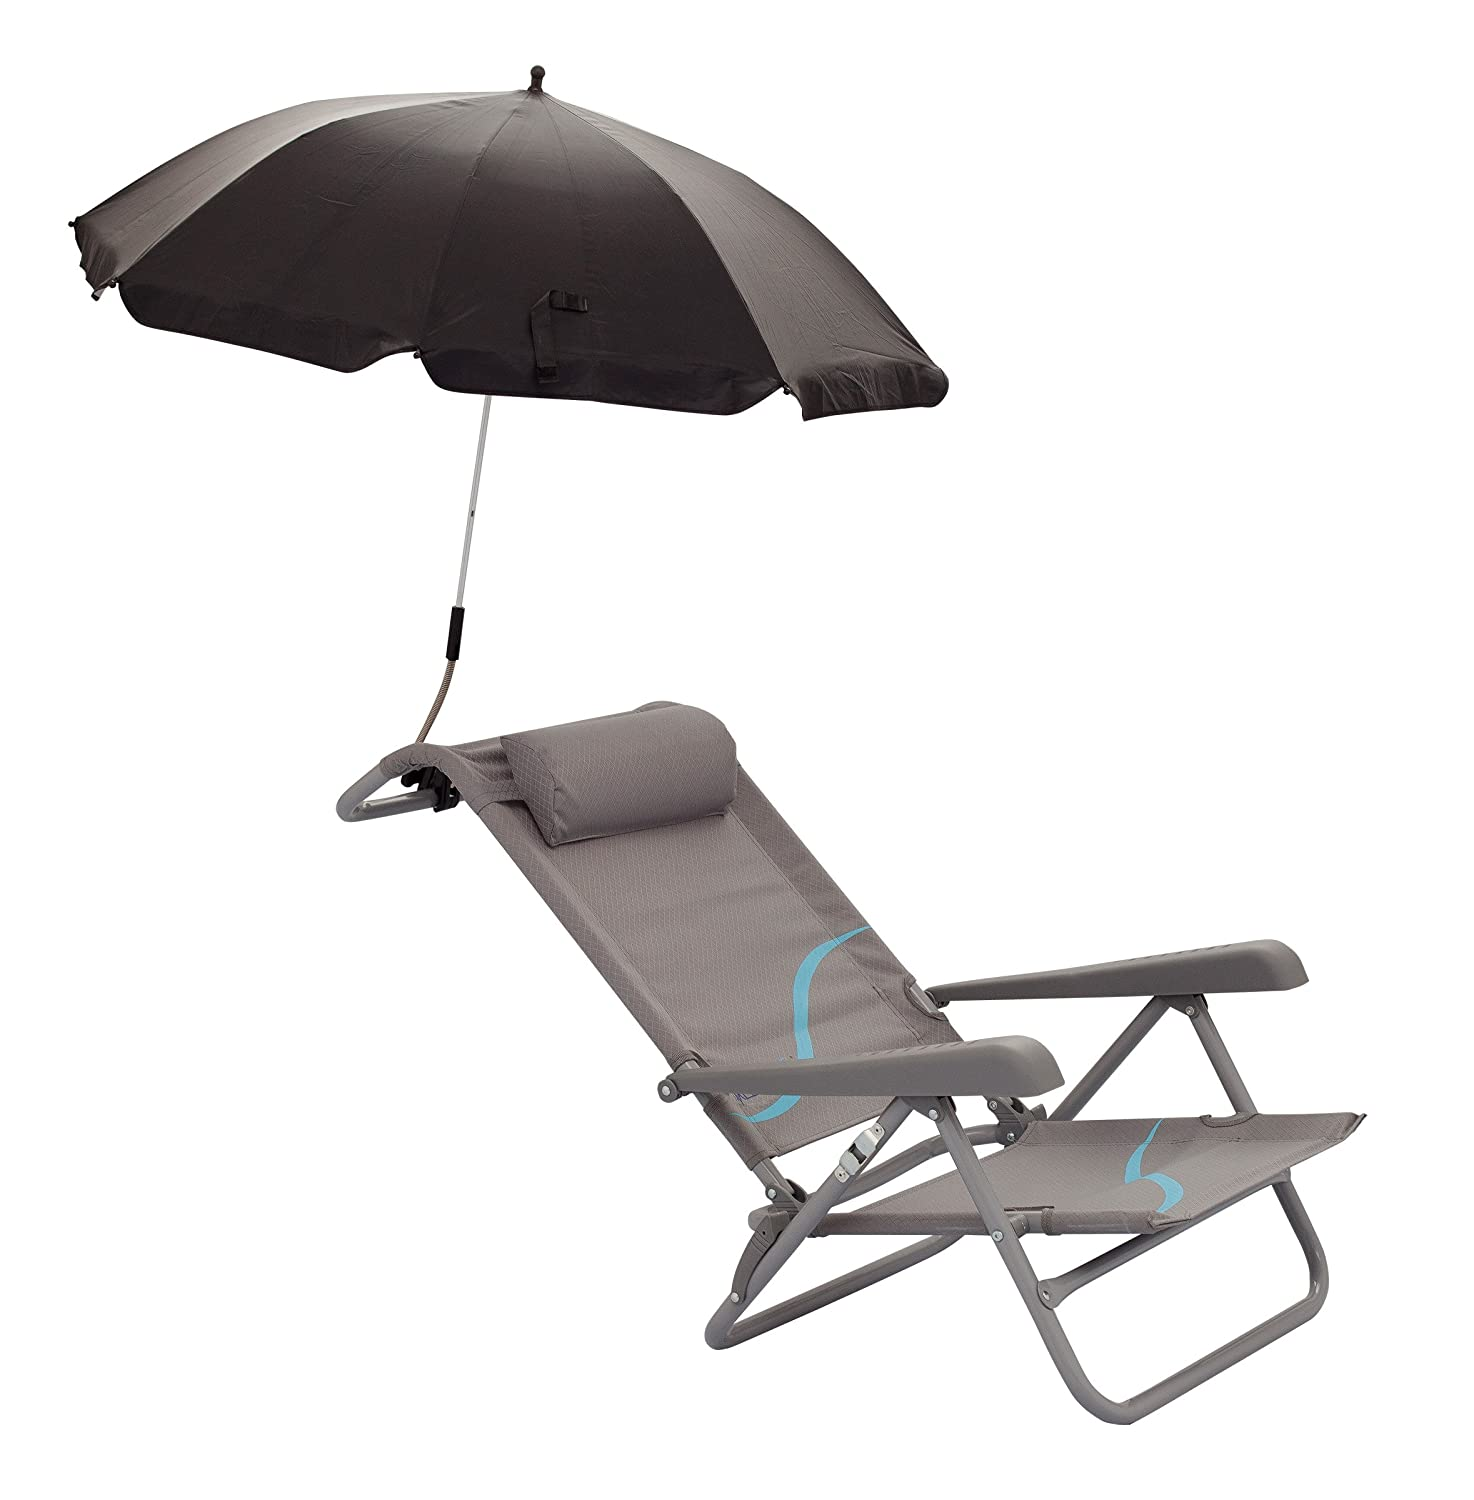 Meerweh Folding Adjustable Beach and Camping Chair with Wide